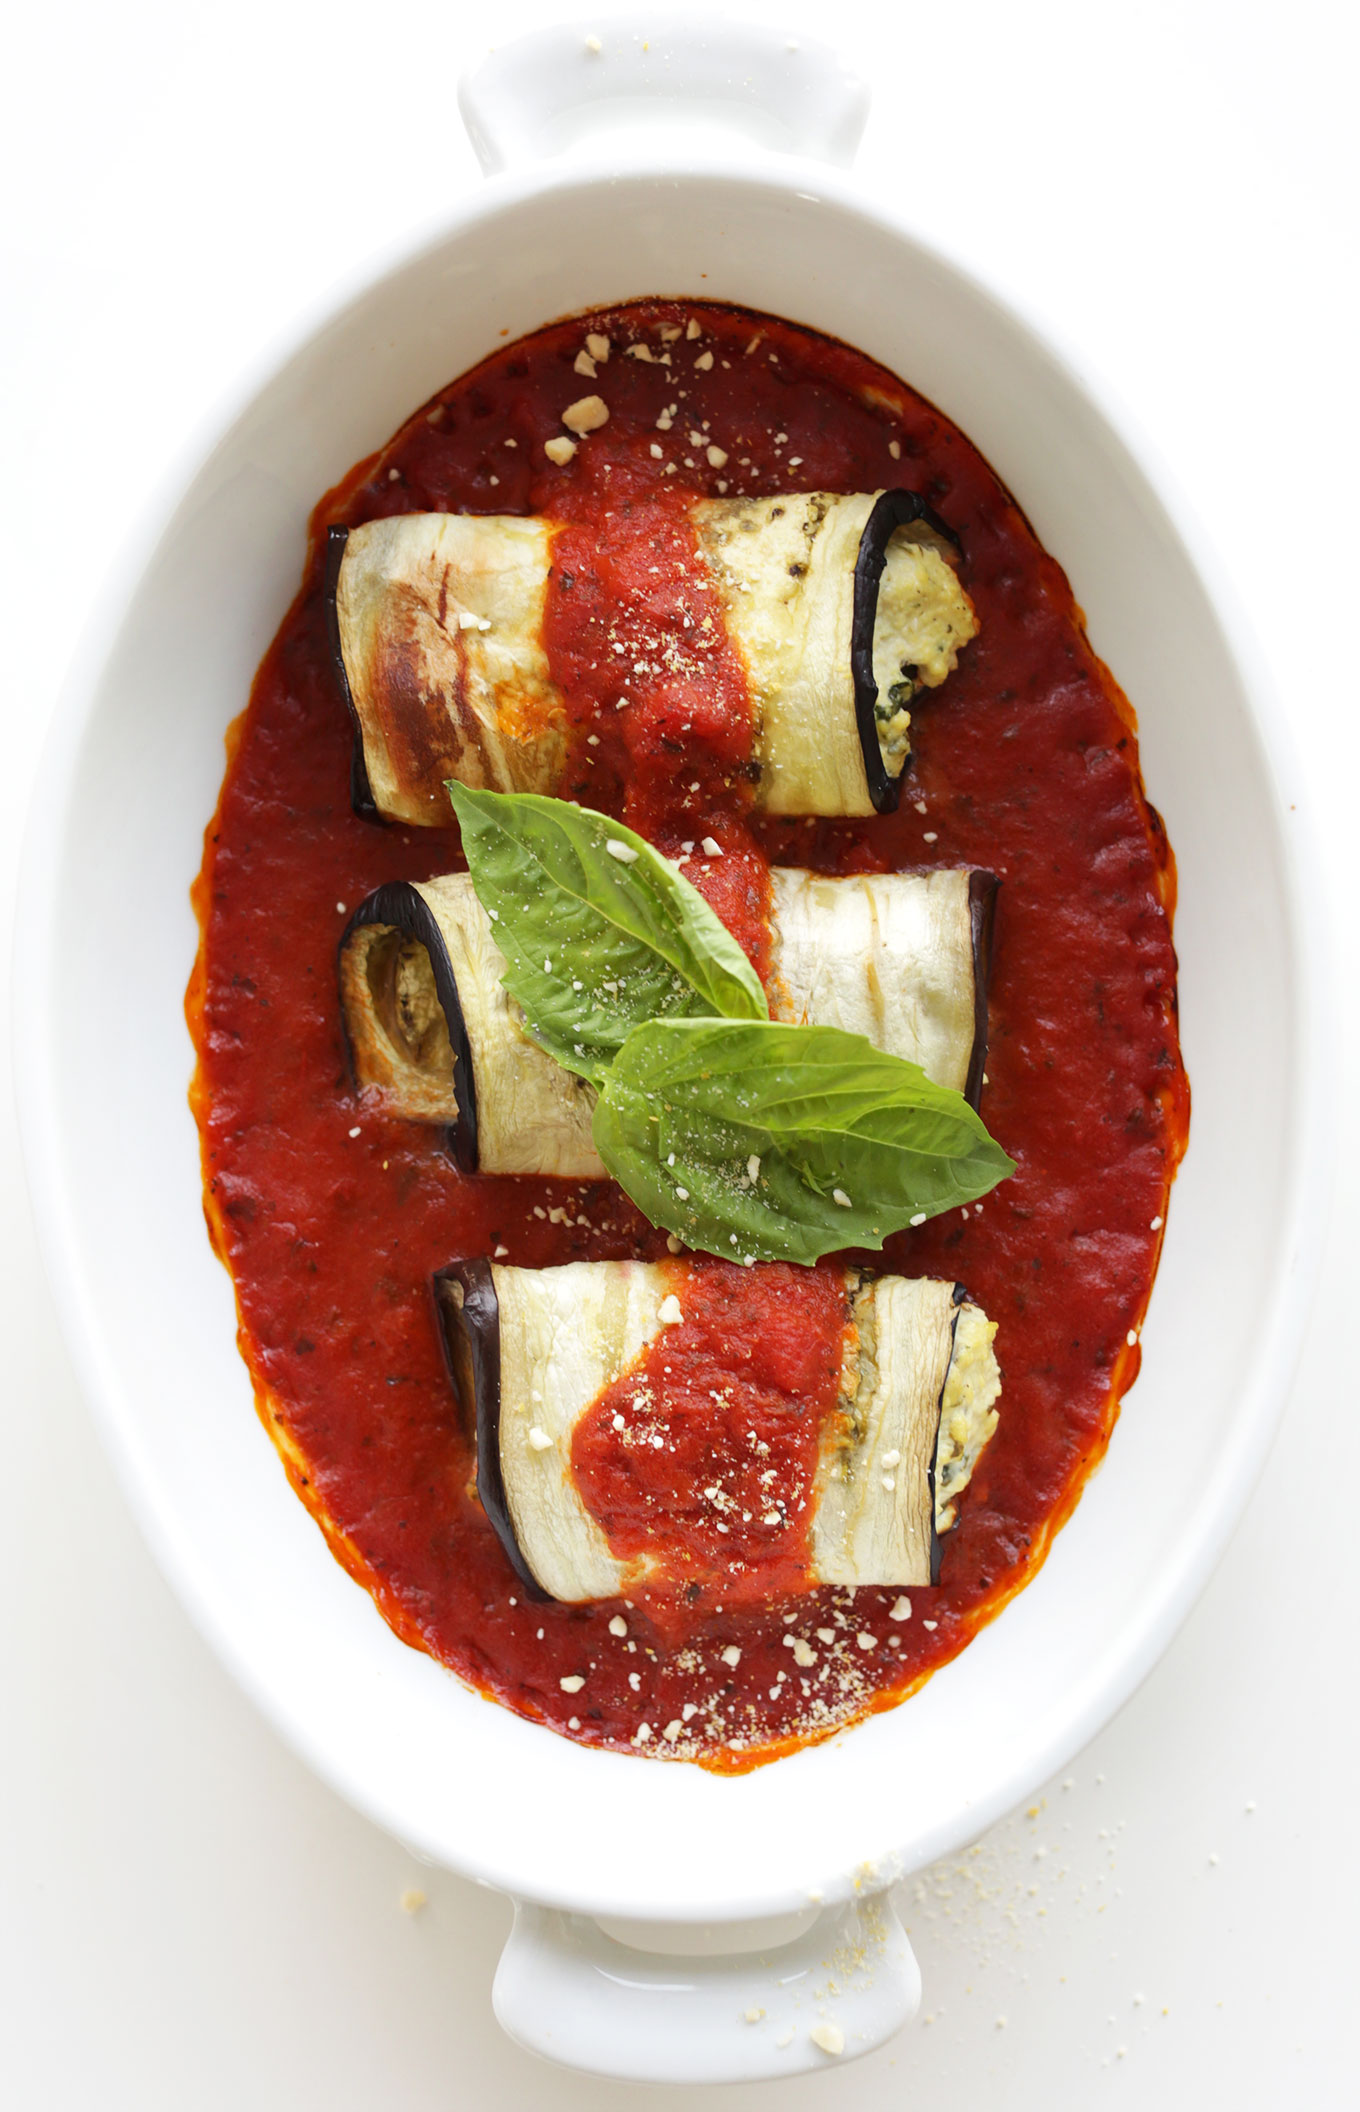 Baking dish filled with Eggplant Lasagna Roll Ups for a satisfying gluten-free vegan meal